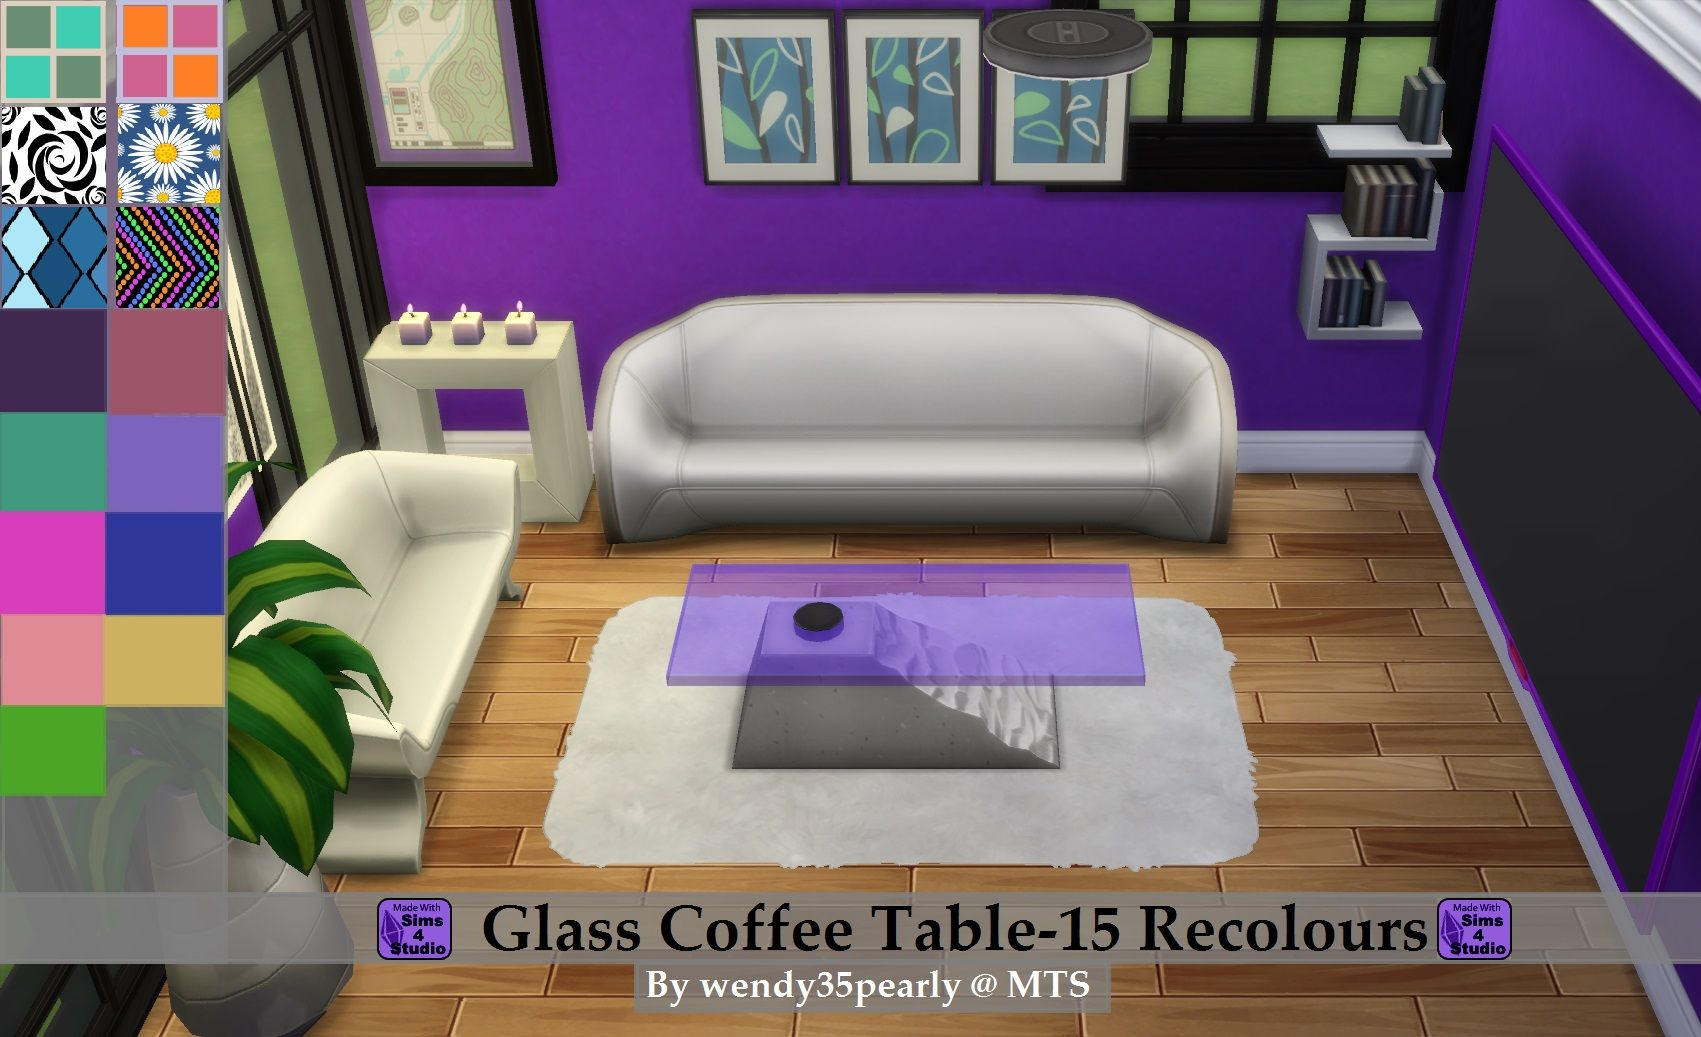 Mod The Sims Glass Coffee Table Set 9 Colours 6 Patterns Coffee Table Setting Glass Coffee Table Coffee Table [ 1037 x 1701 Pixel ]